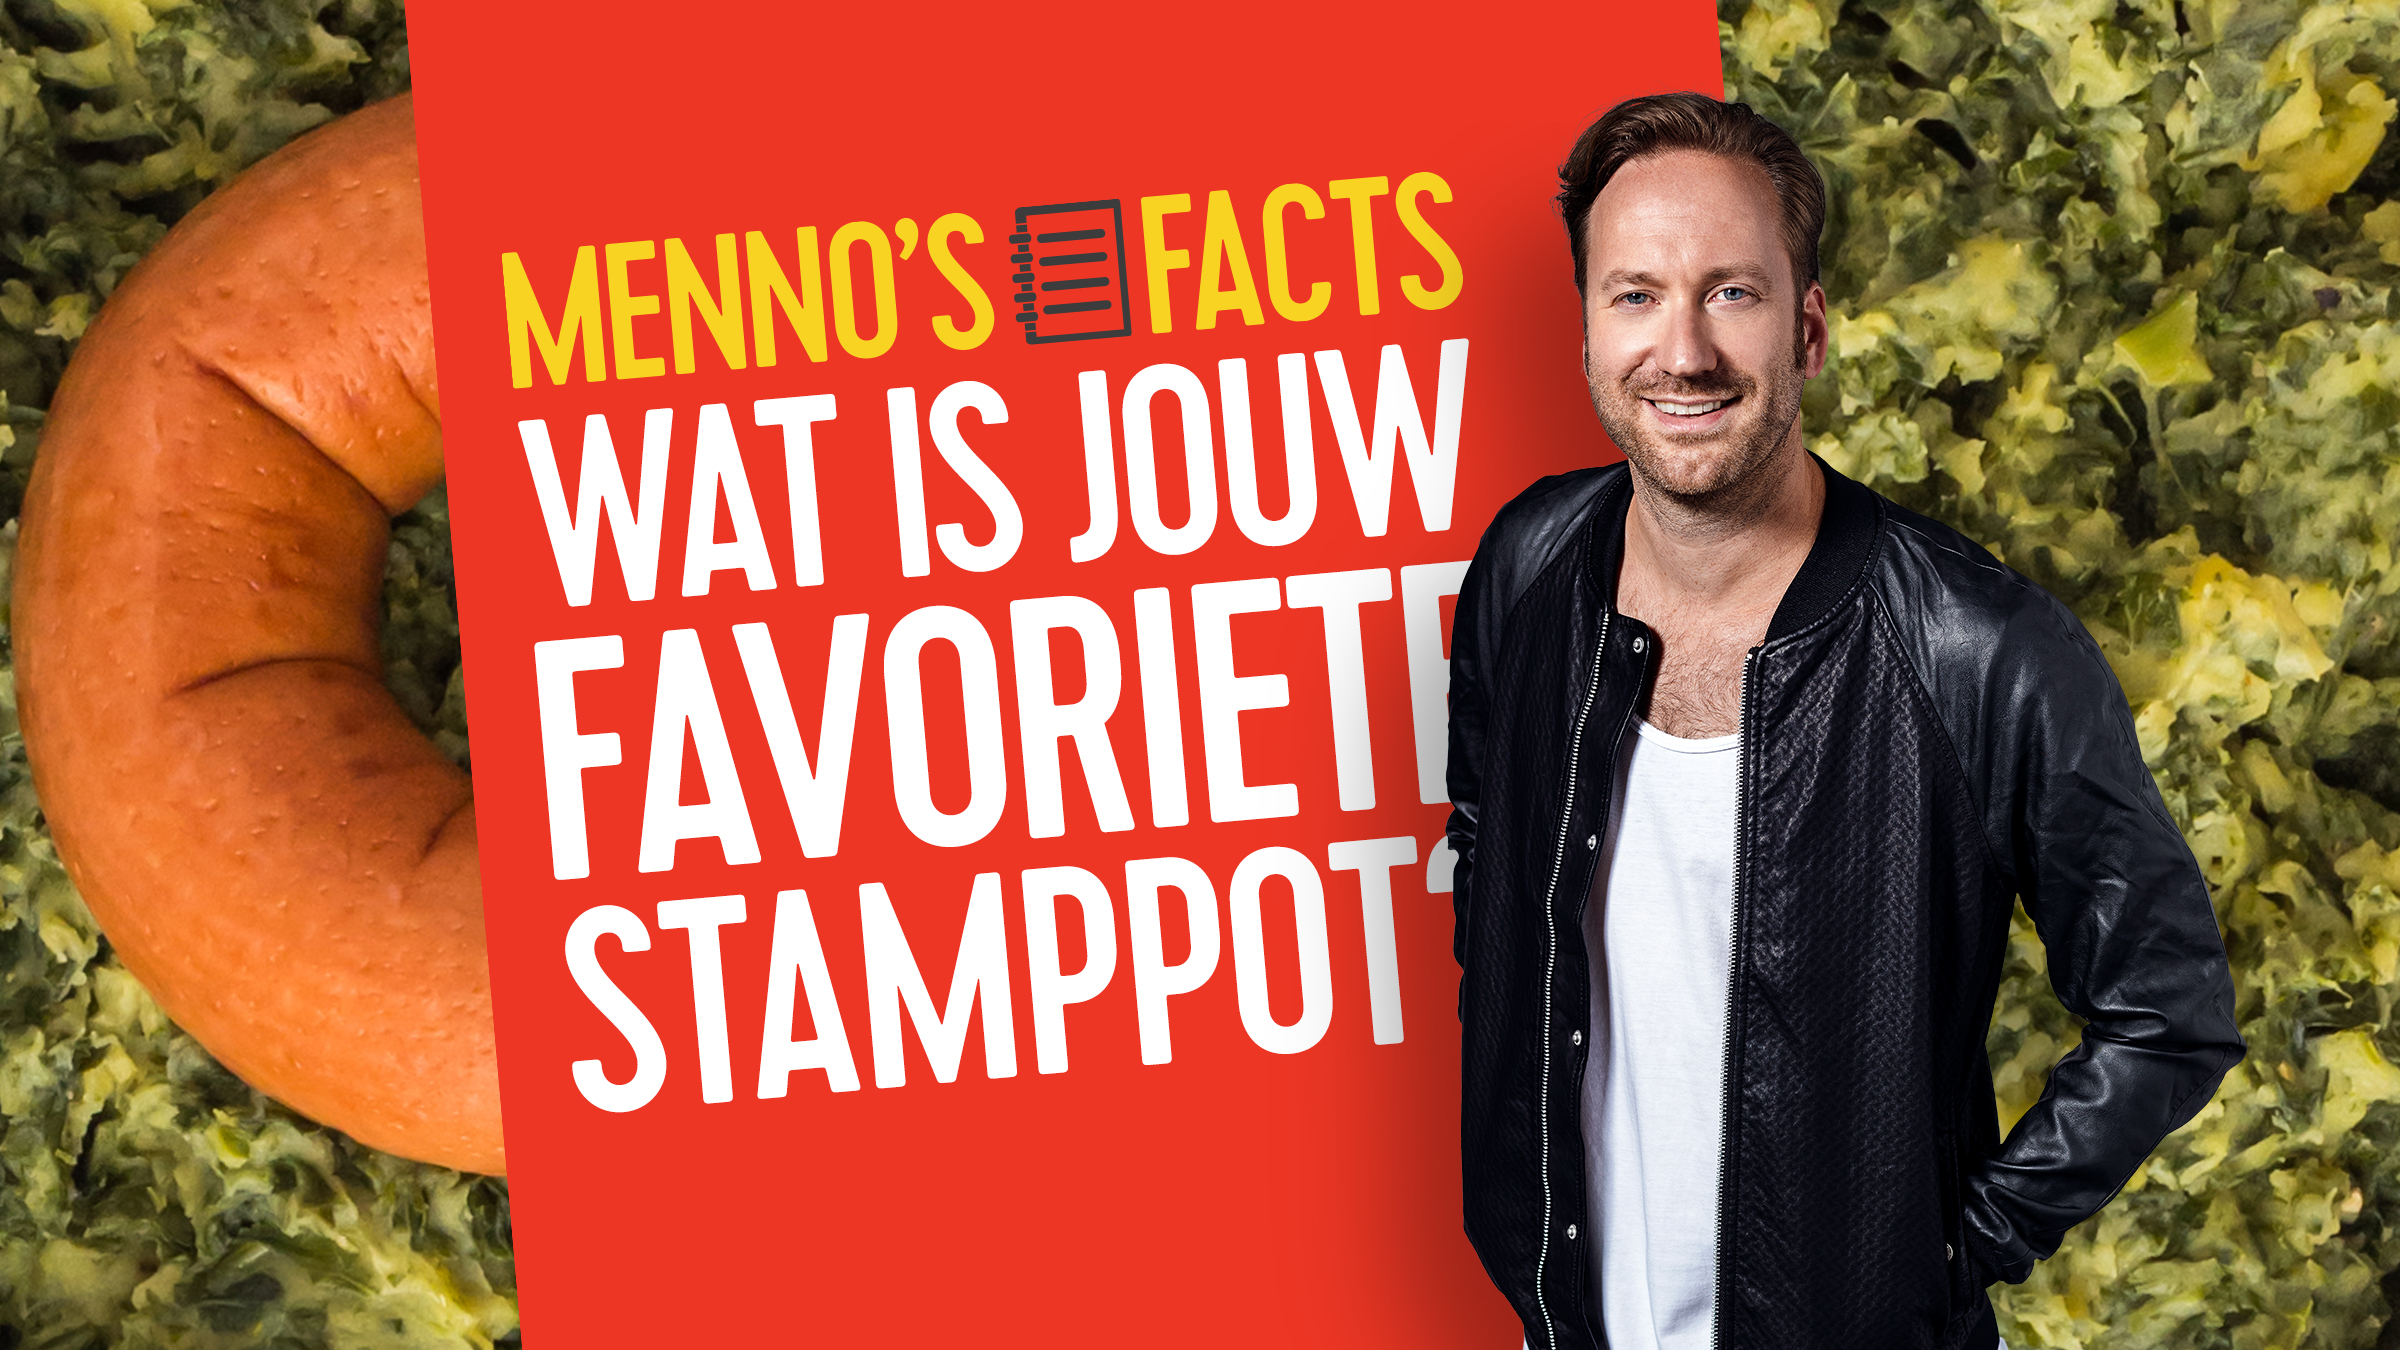 Stamppot teaser basis mennosfacts17